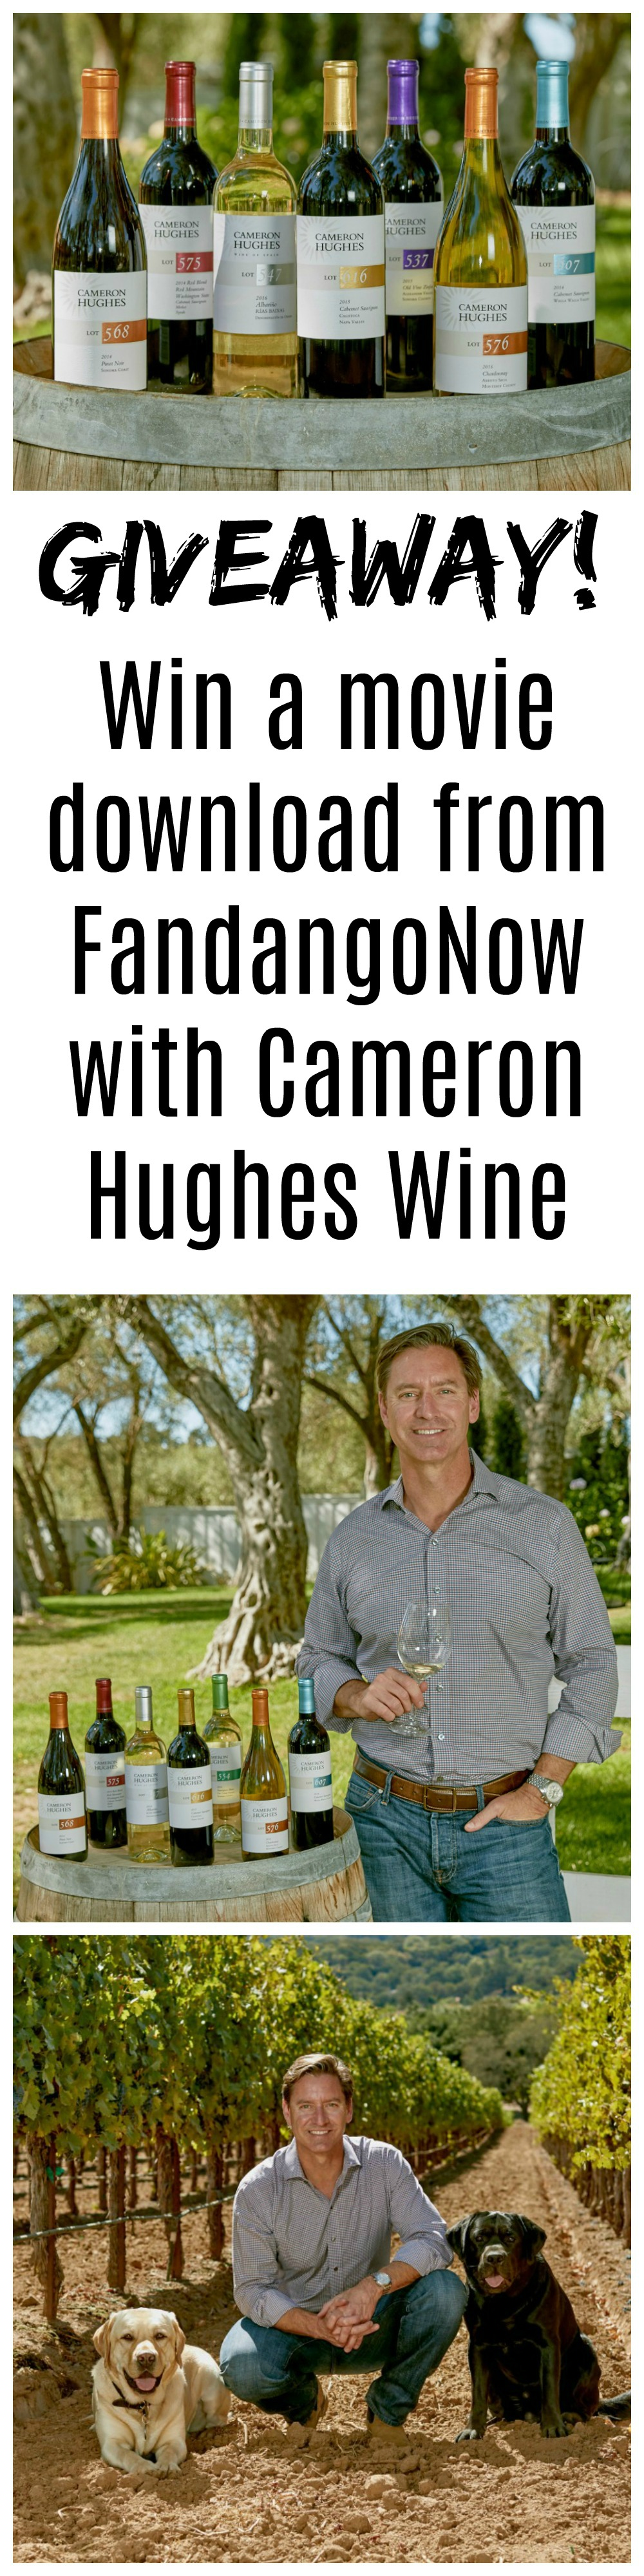 Movie giveaway with FandangoNow and Cameron Hughes Wine